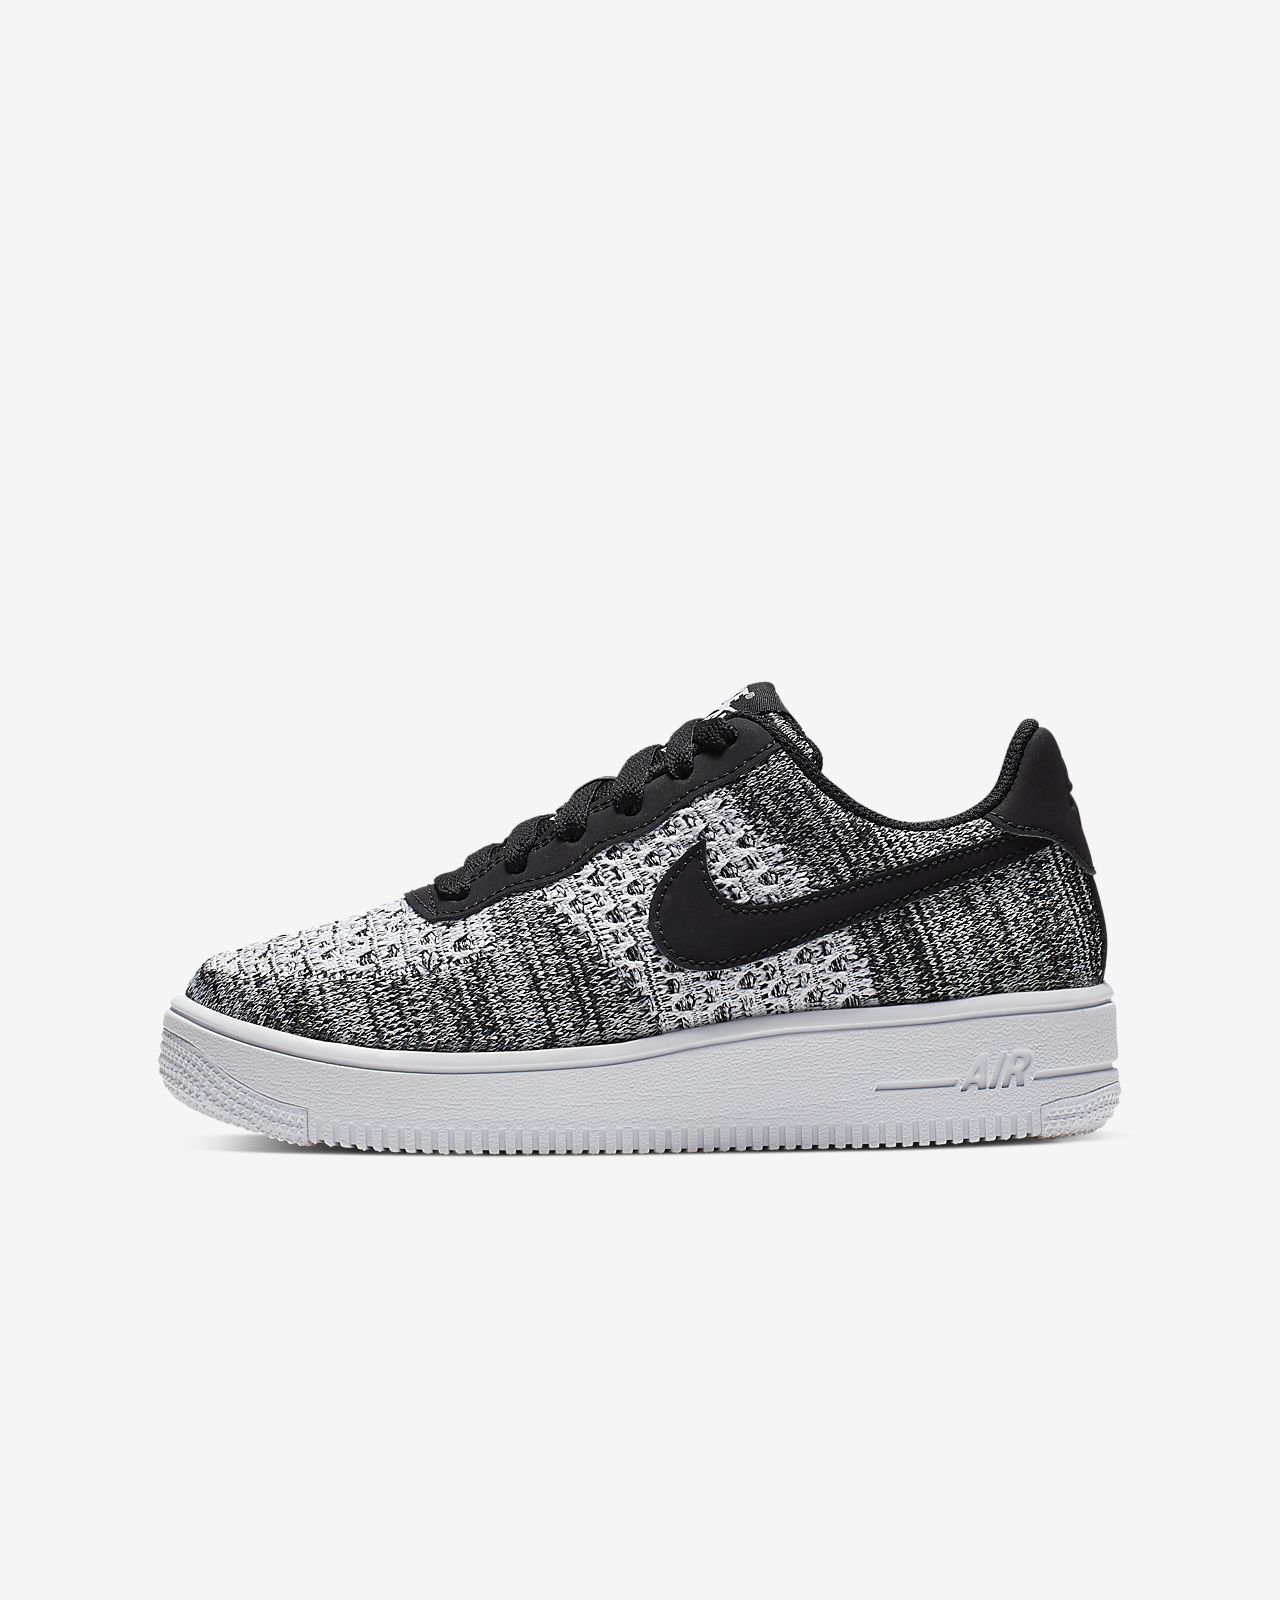 Sapatilhas Nike Air Force 1 Flyknit 2.0 Júnior